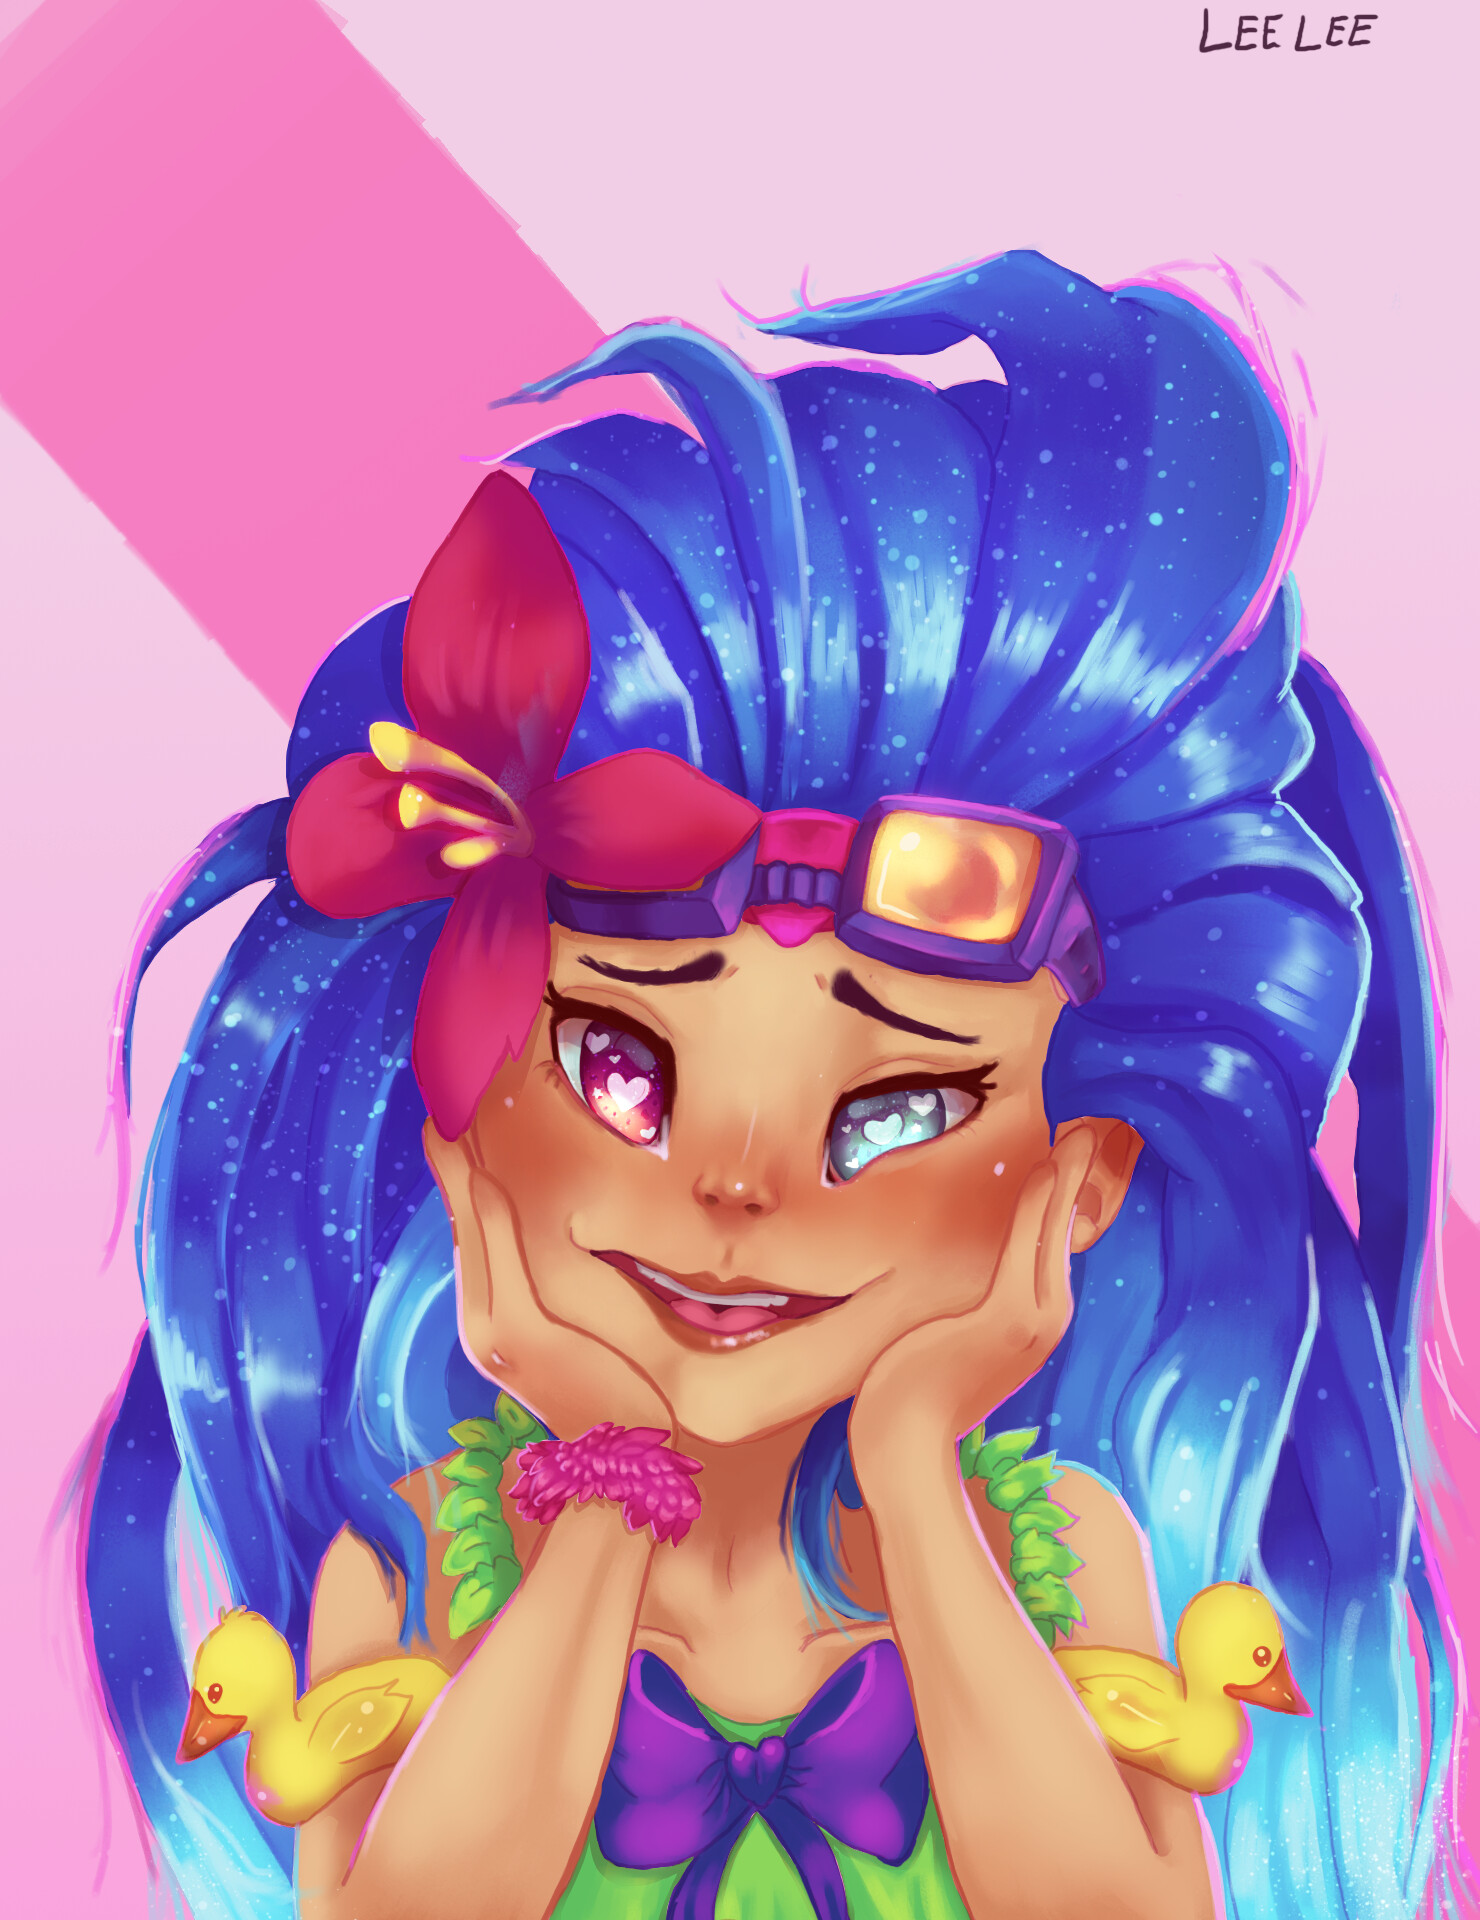 ArtStation - LoL Zoe - Dreeeeaammy~!, Aaliyah Johnson